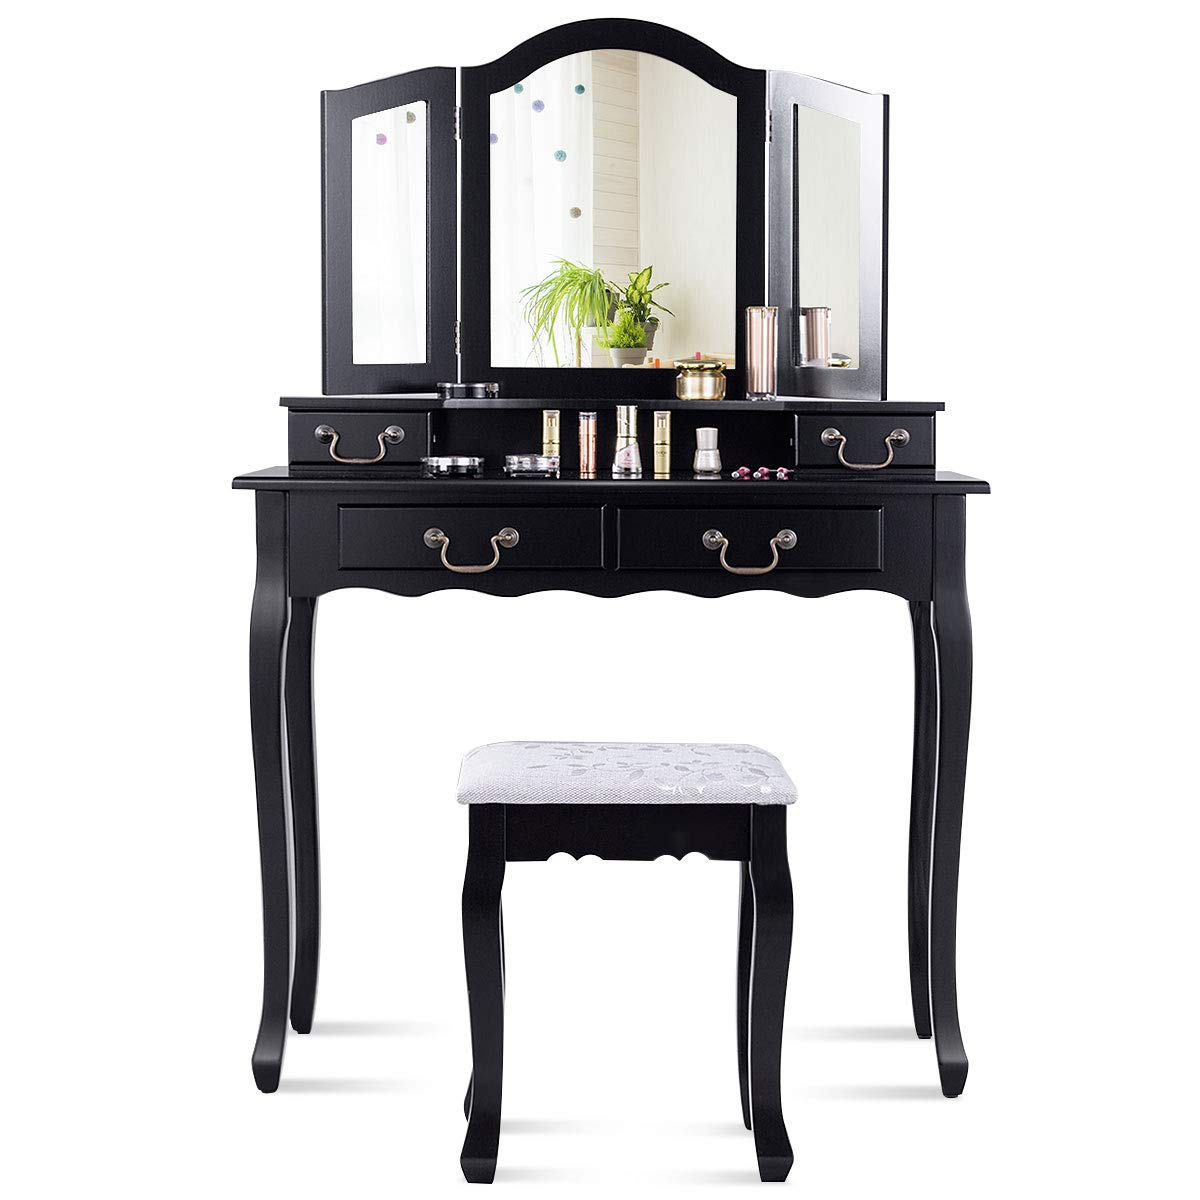 CHARMAID Tri-Folding Mirror Vanity Set with Cushioned Stool and 4 Drawers, Makeup Dressing Table with Cushioned Stool for Women Girls Bedroom, Bedroom Bathroom Vanity Table and Stool Set (Black)